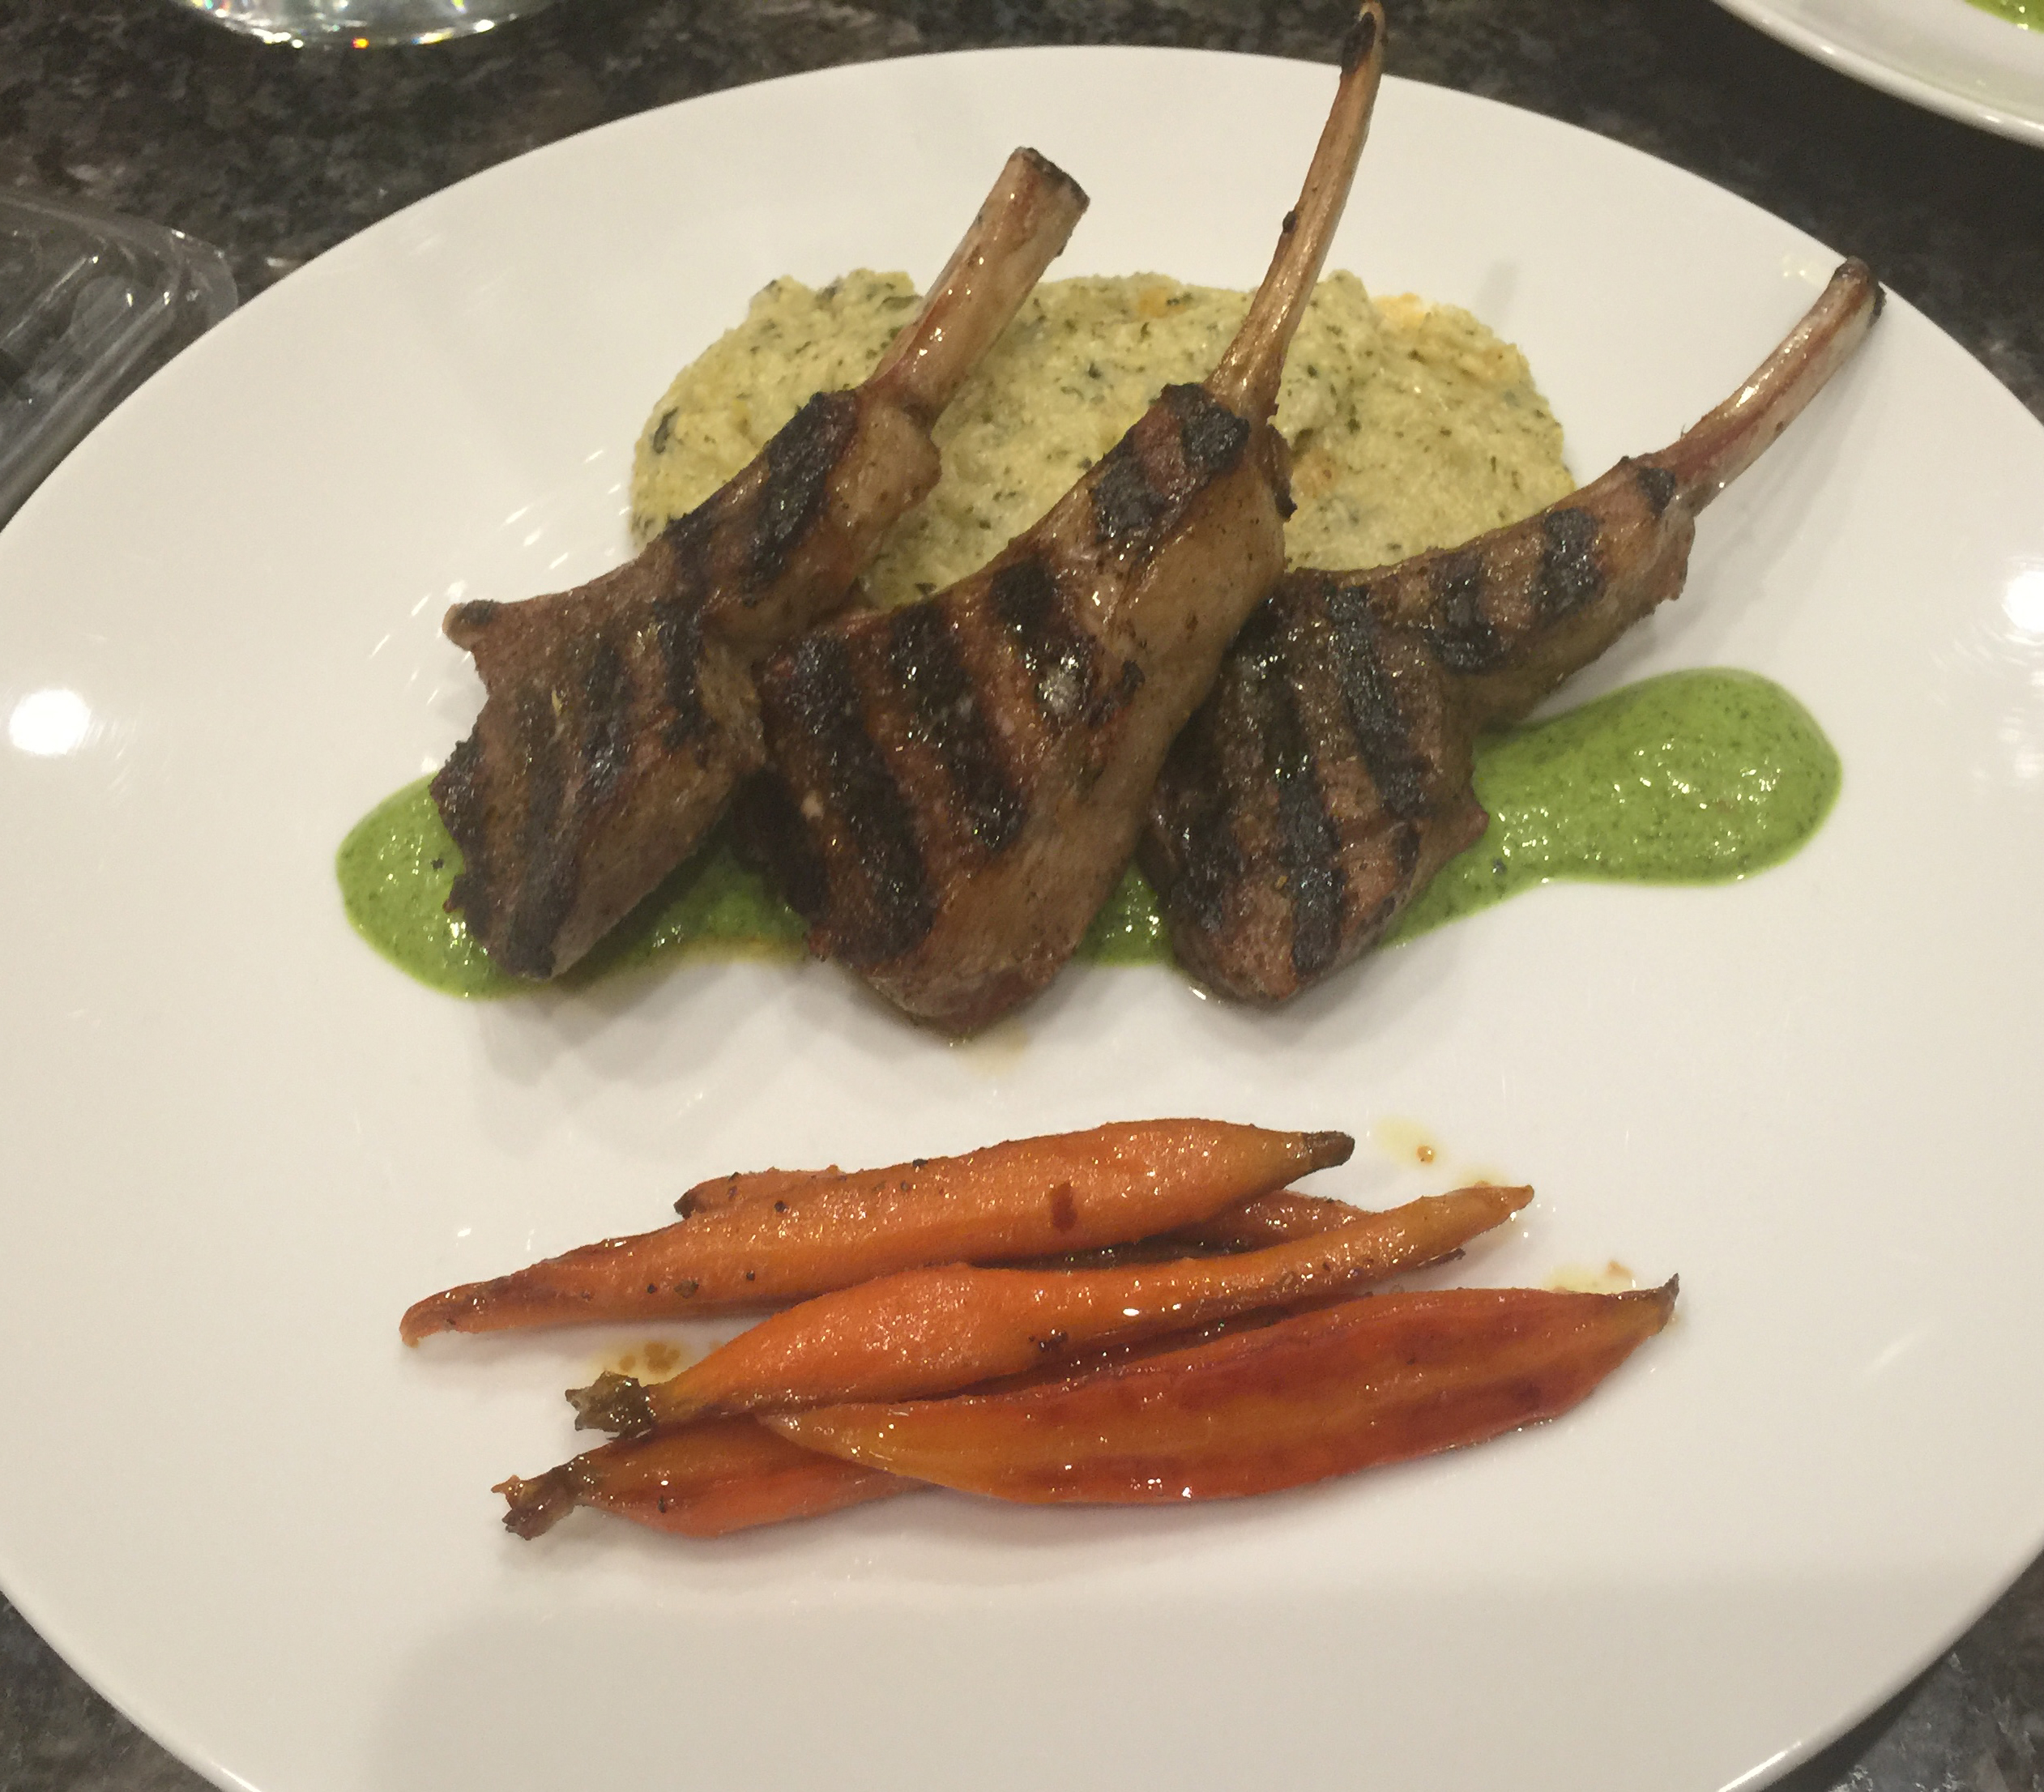 Grilled Lamb Rib Chops with Chimichurri Sauce, Creamy Polenta and Roasted Carrots